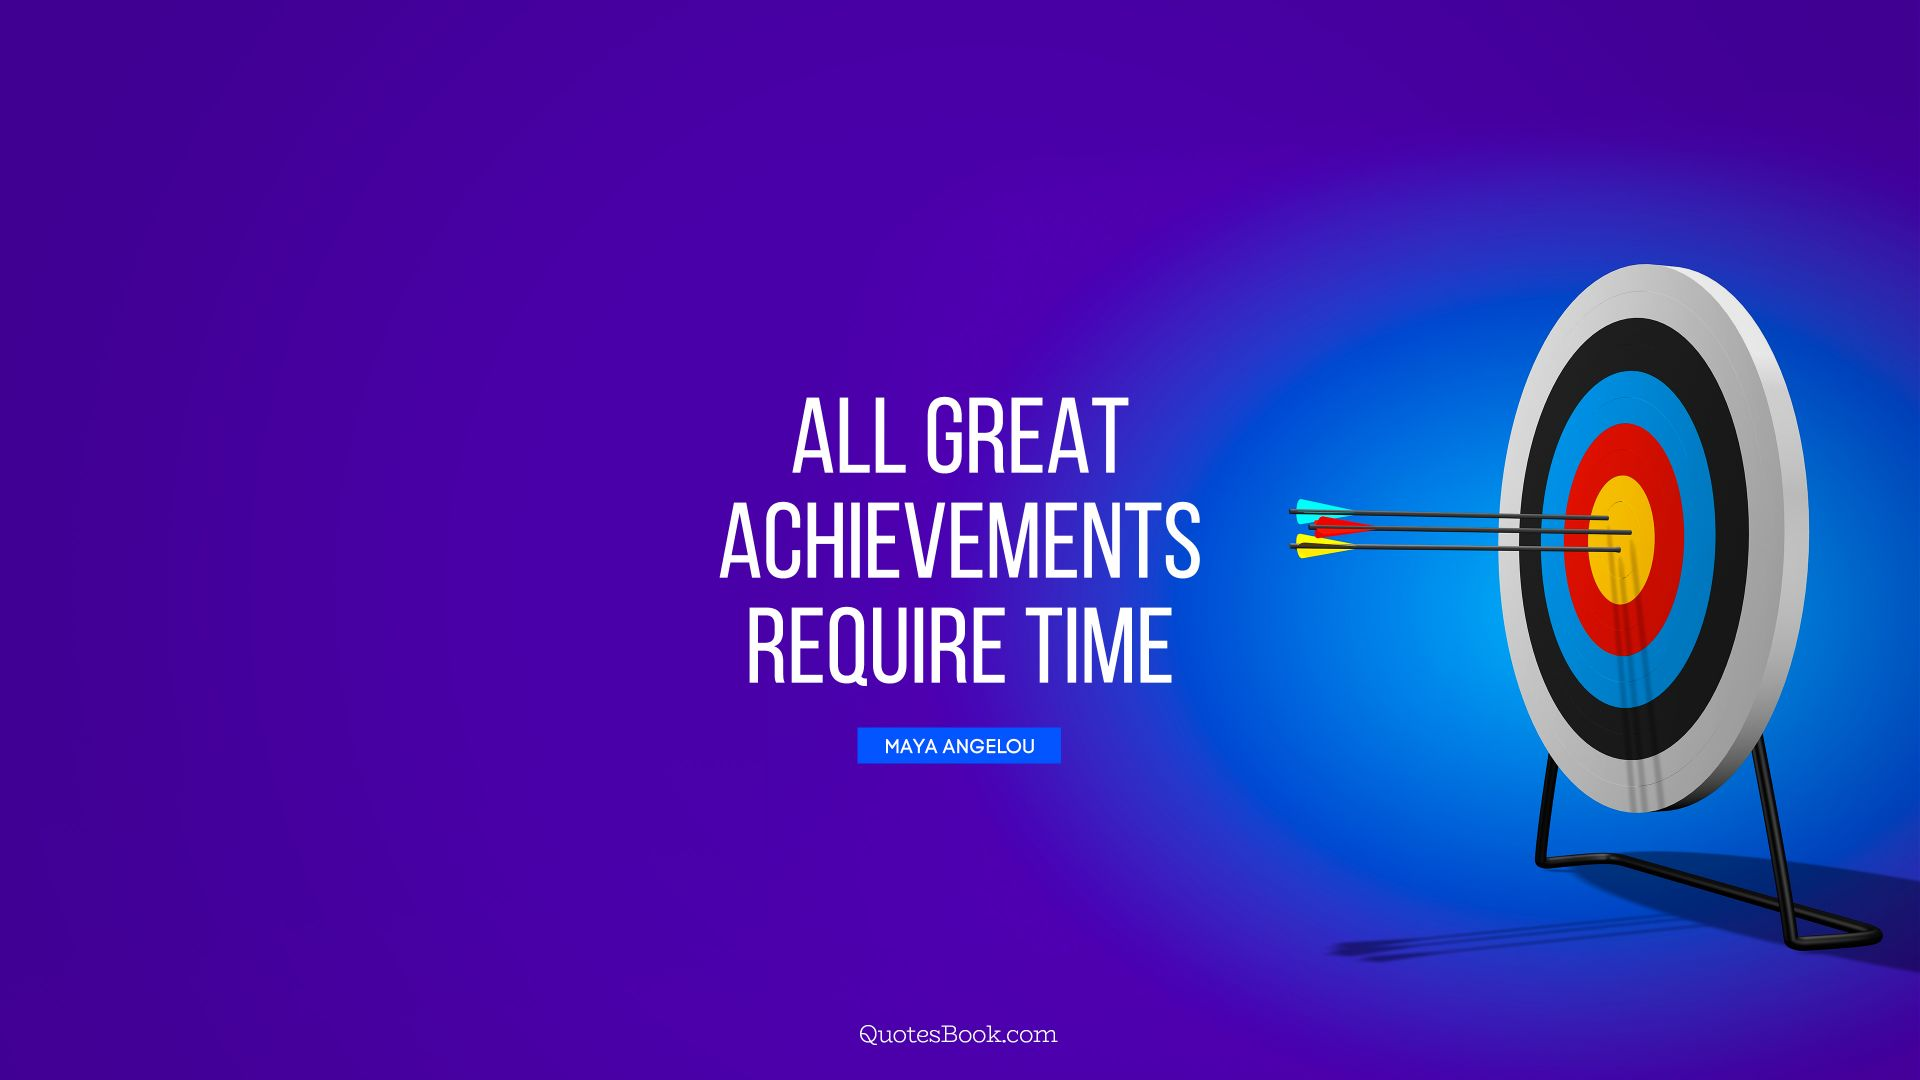 All great achievements require time. - Quote by Maya Angelou